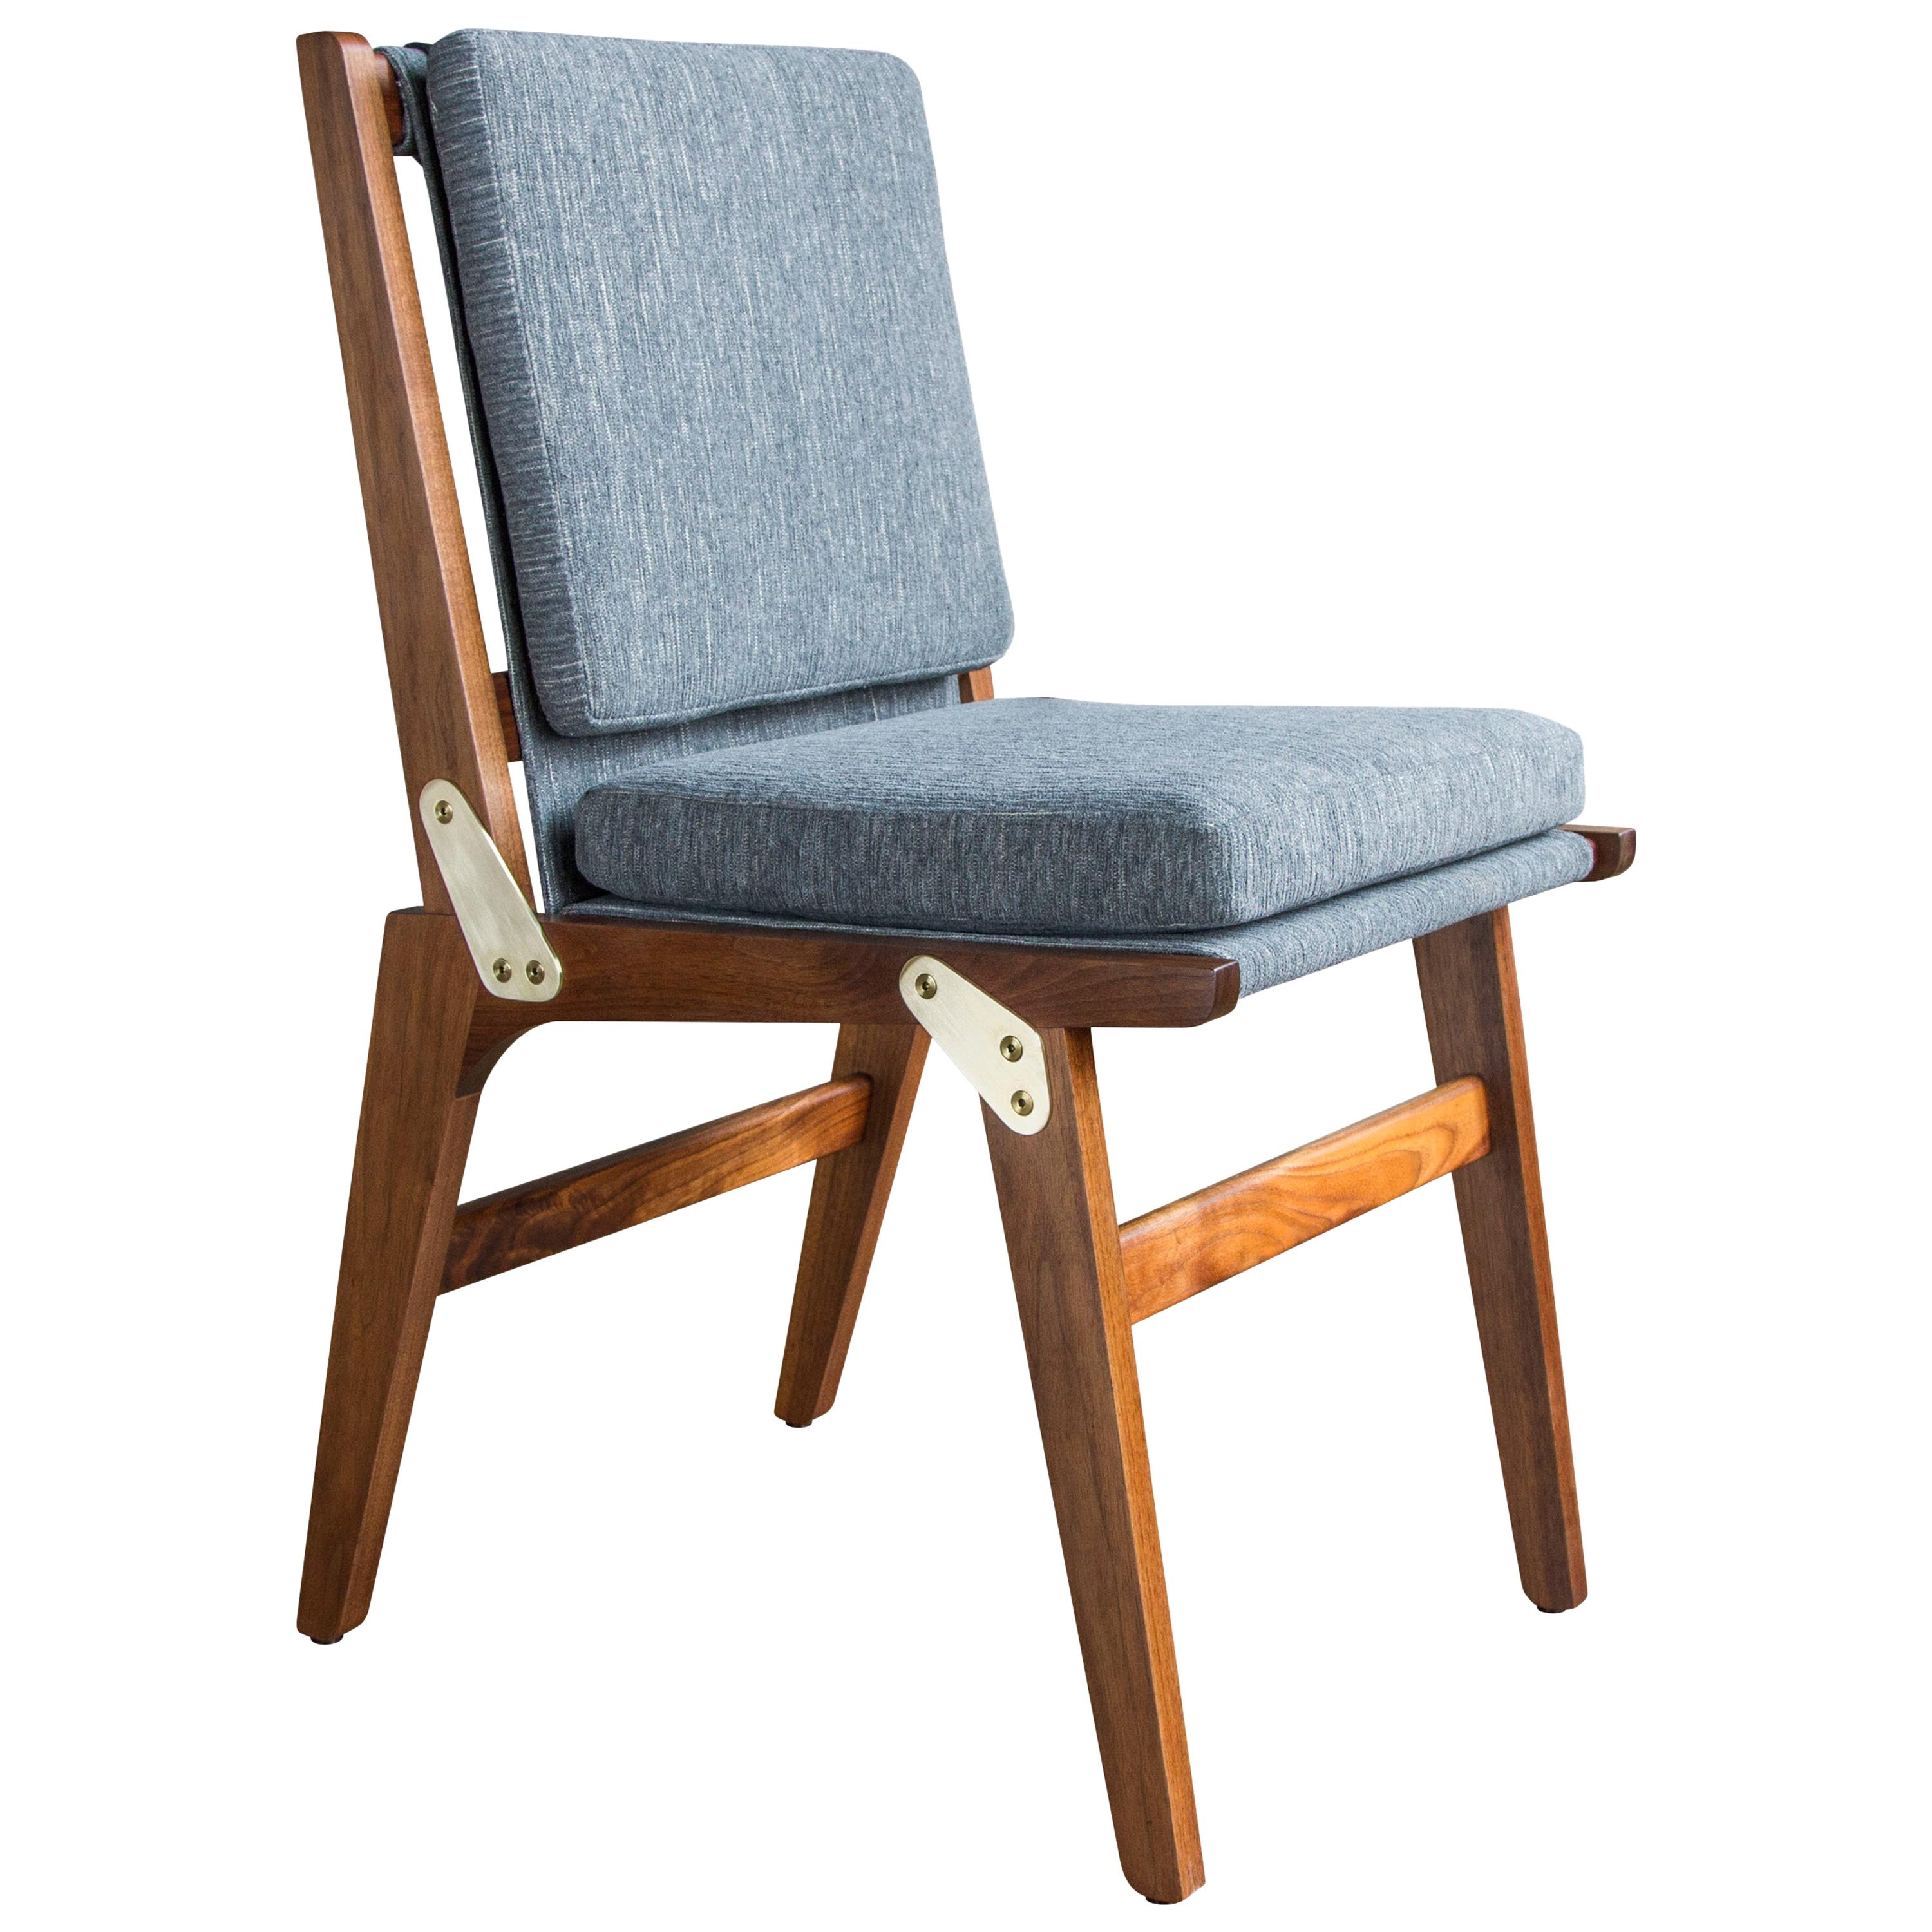 O.F.S. Dining Chair in Oiled Walnut - handcrafted by Richard Wrightman Design